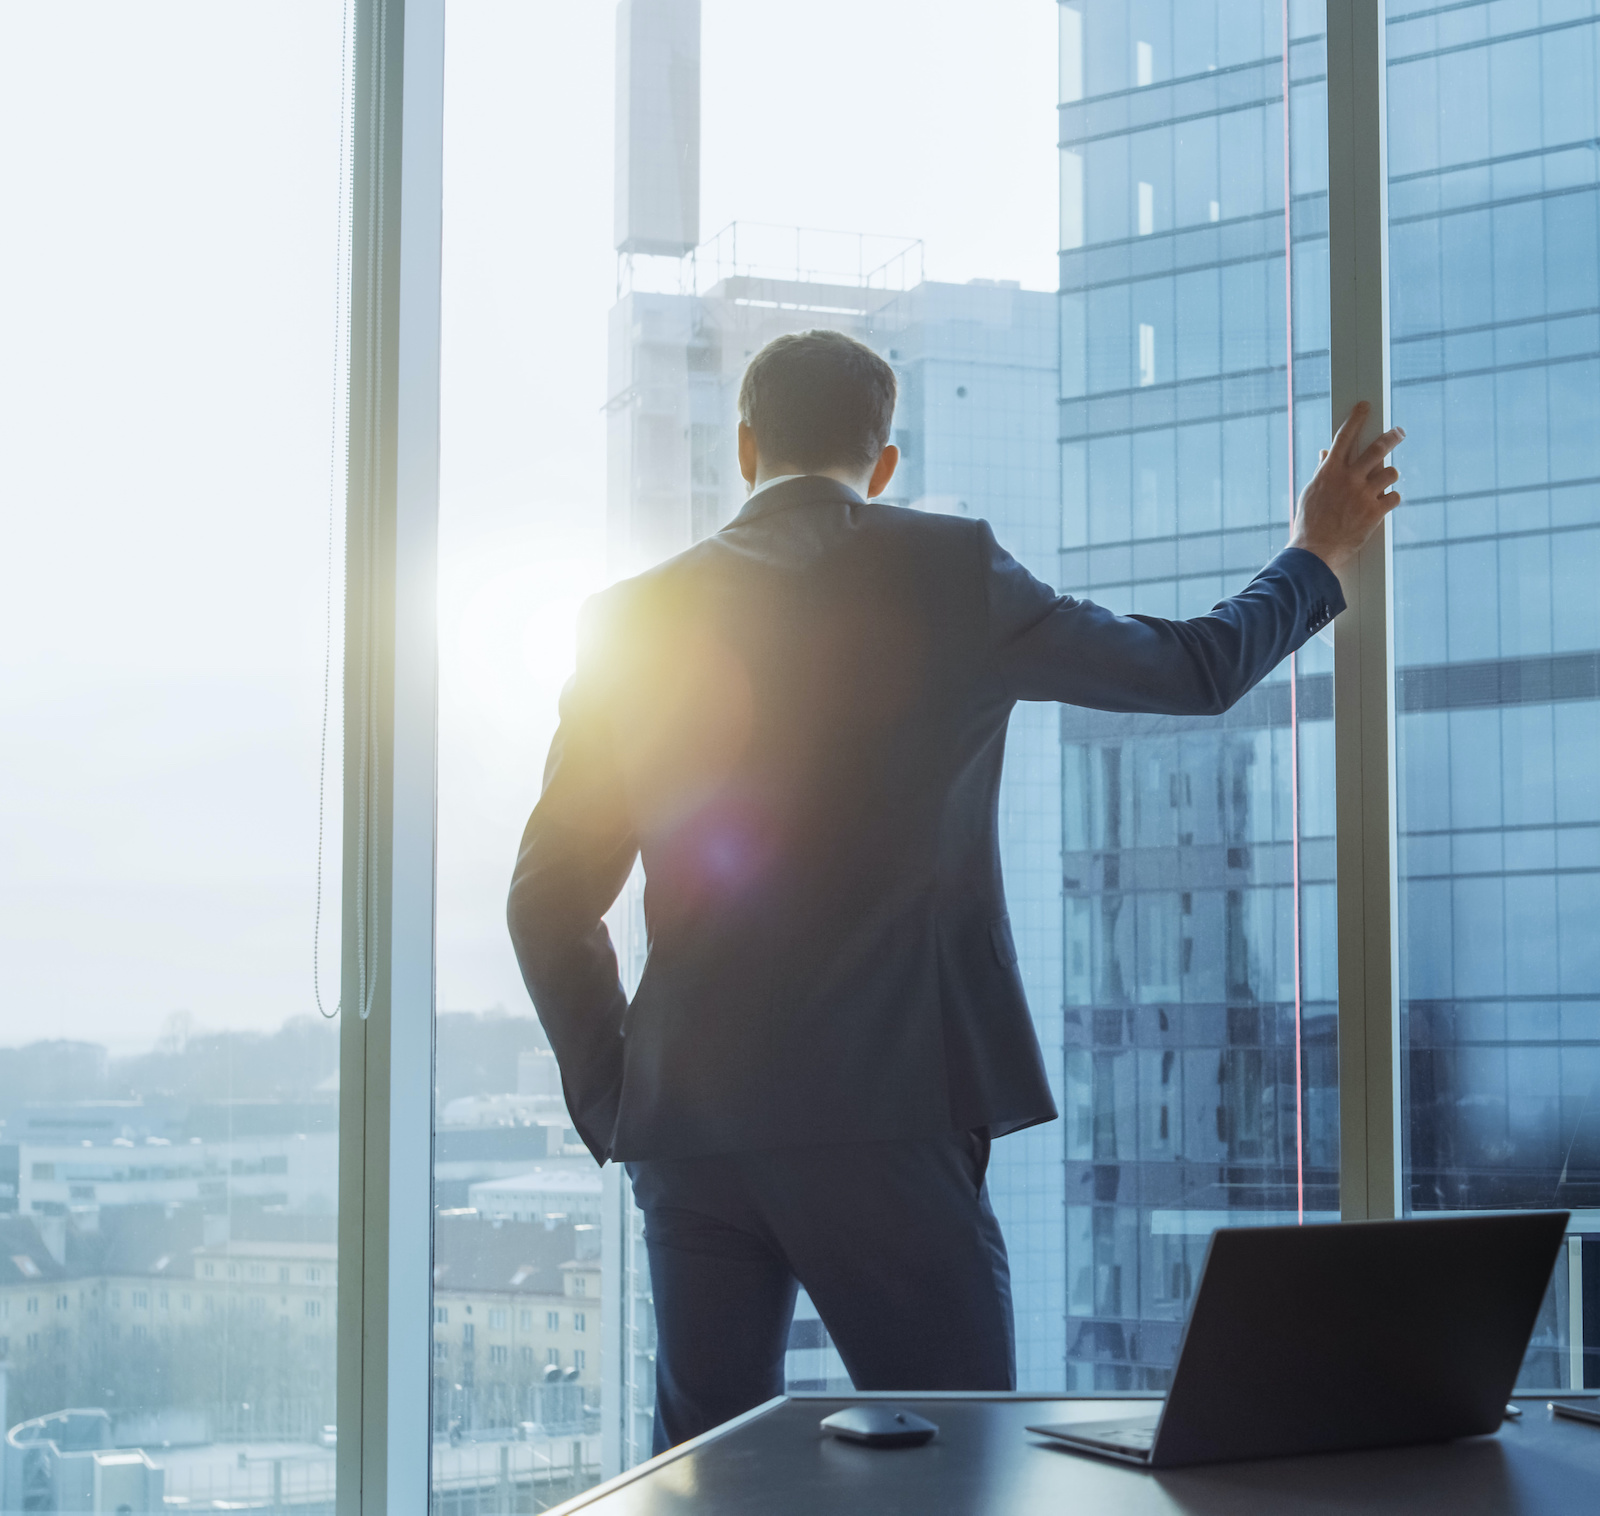 Shot of the Confident Businessman in a Suit in His Office Leaning Against Window Frame, Looking out of the Window Thoughtfully. Big City Business District Panoramic Window View.